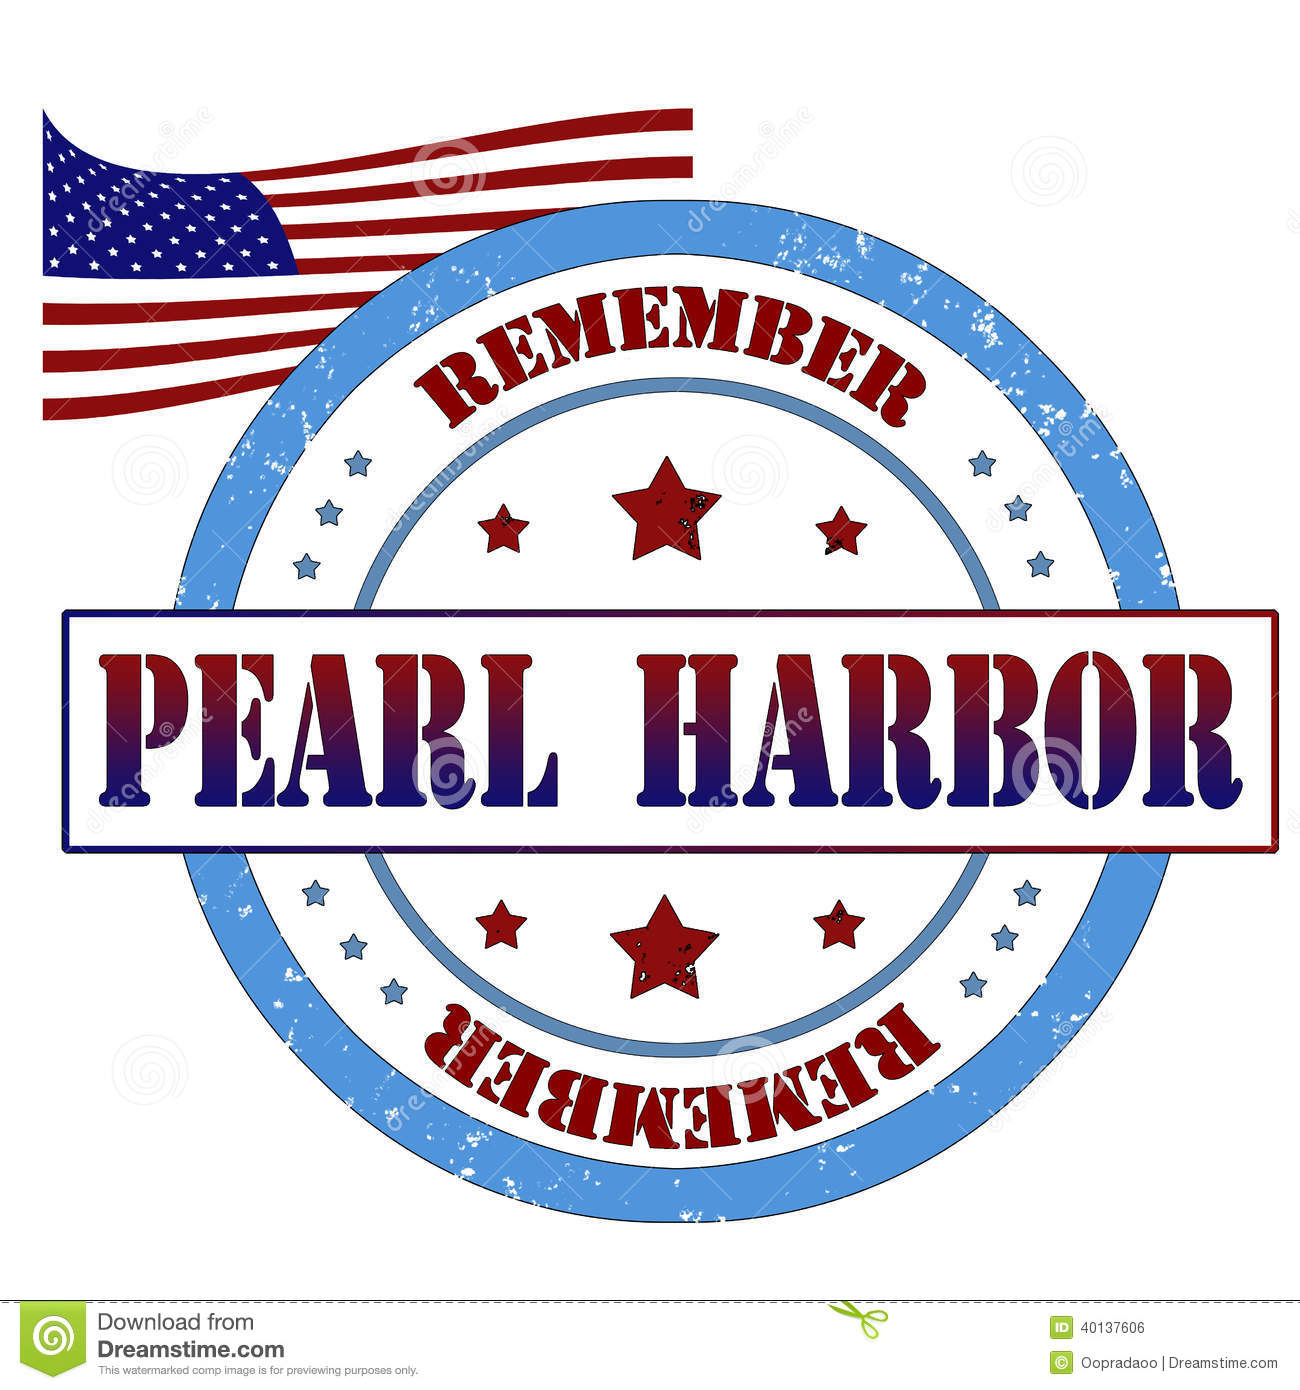 Remembrance Day Pearl Harbor >> Pearl Harbor Stamp Stock Illustration - Image: 40137606